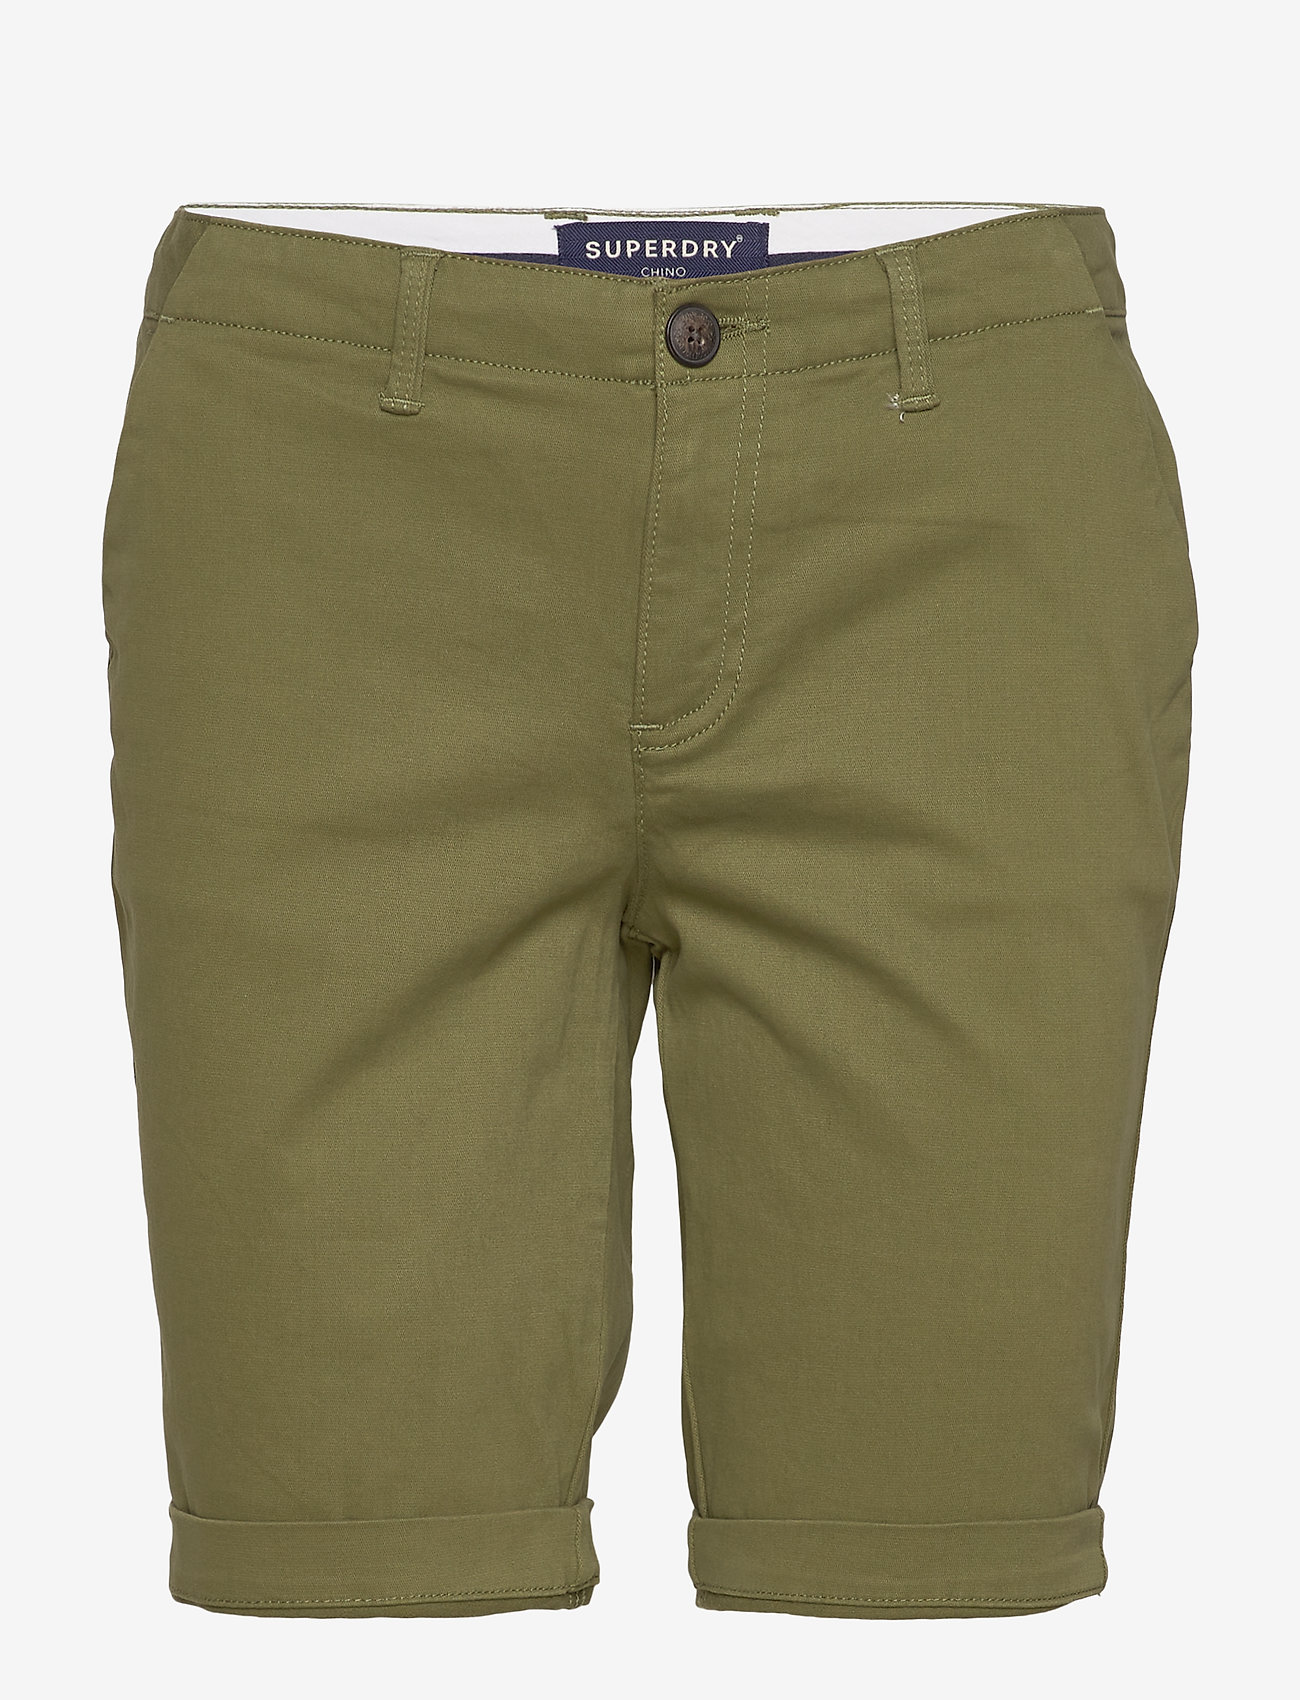 Superdry - CITY CHINO SHORT - bermuda-shortsit - capulet olive - 0